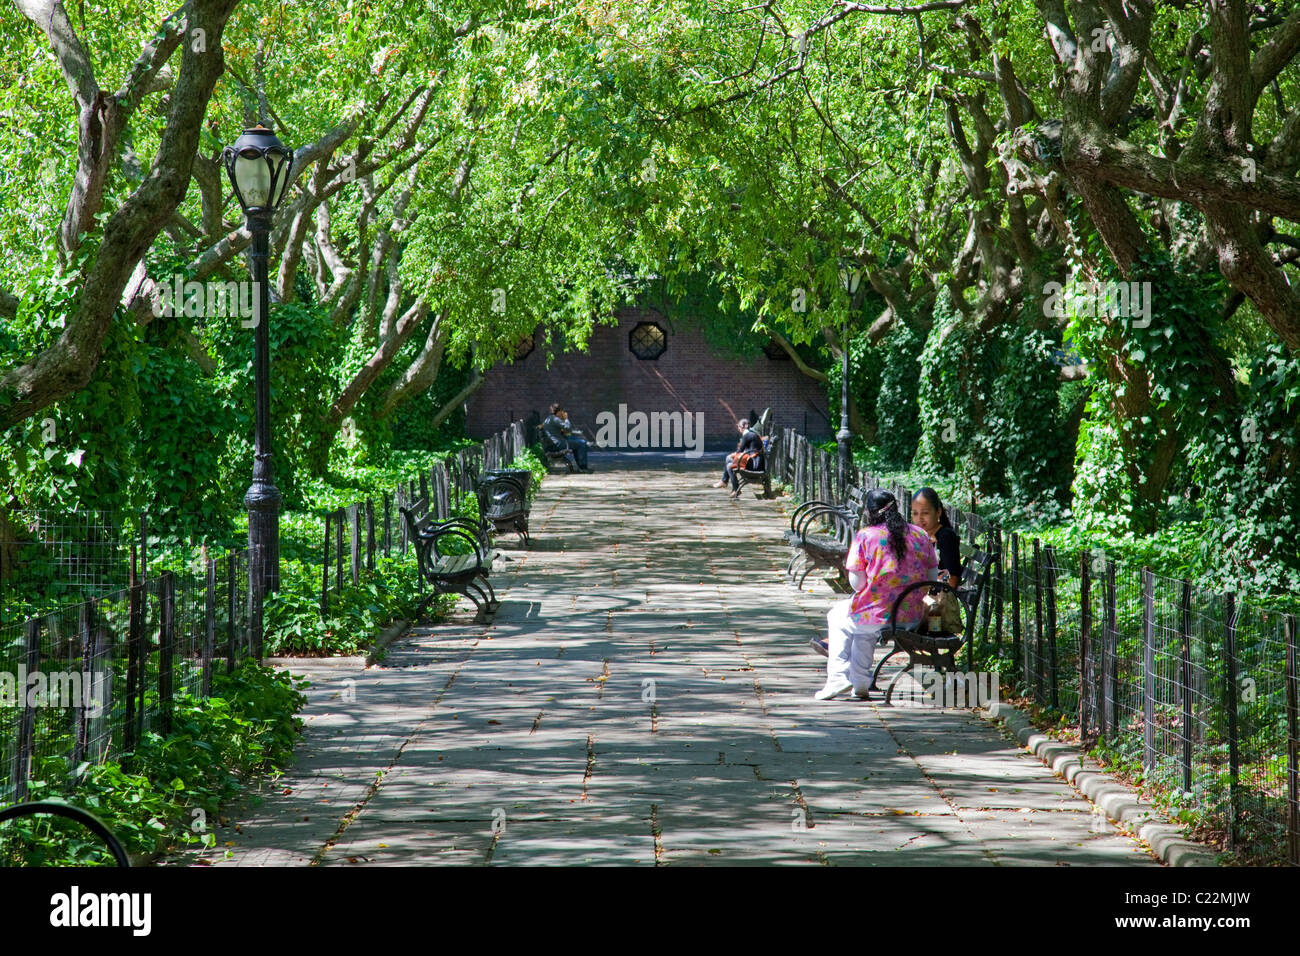 Conservatory Gardens, Central Park, Manhattan, New York - Stock Image